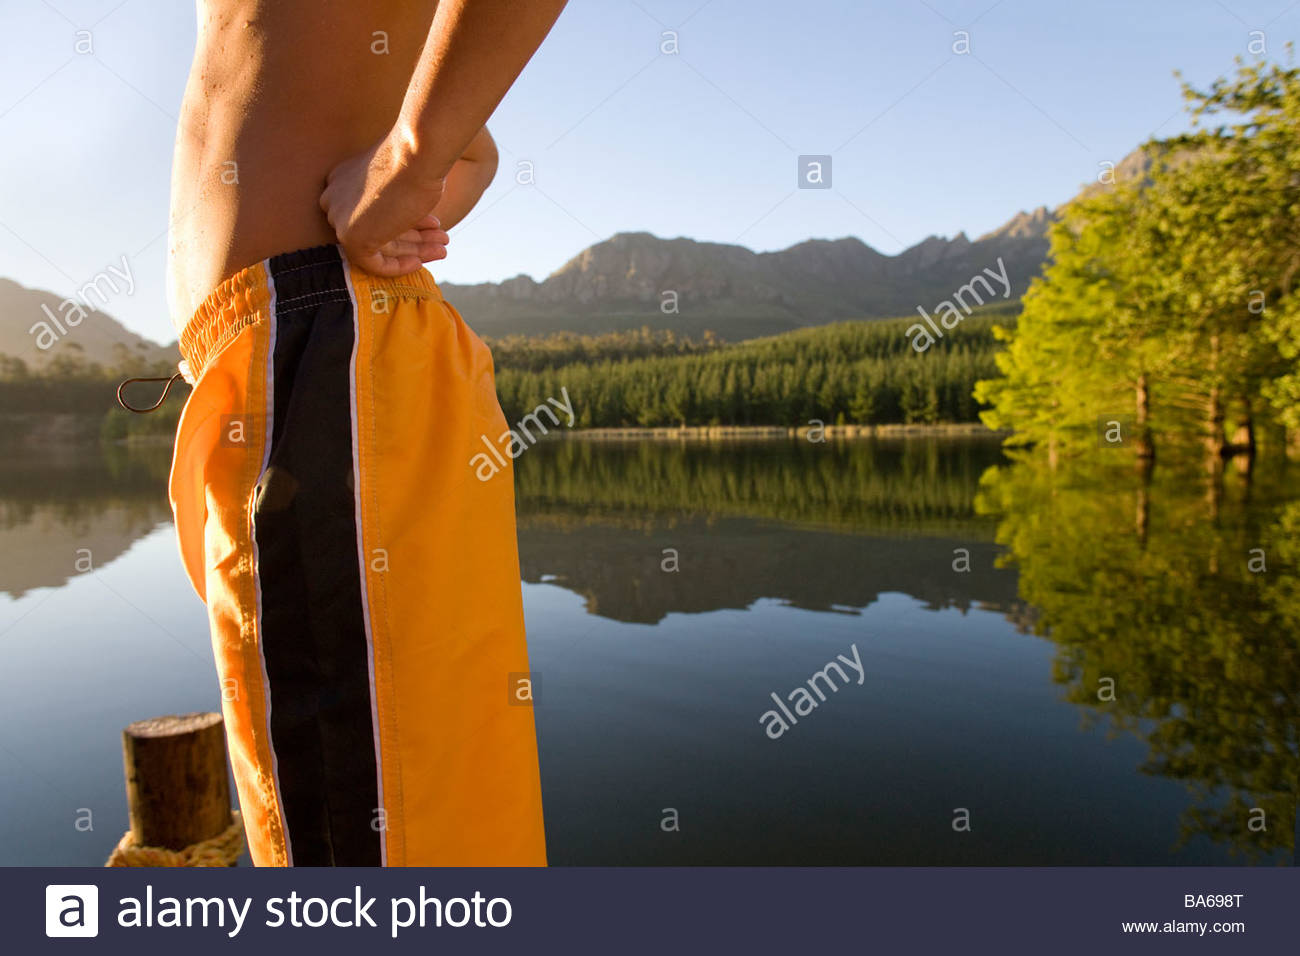 Midsection of man in swim trunks - Stock Image